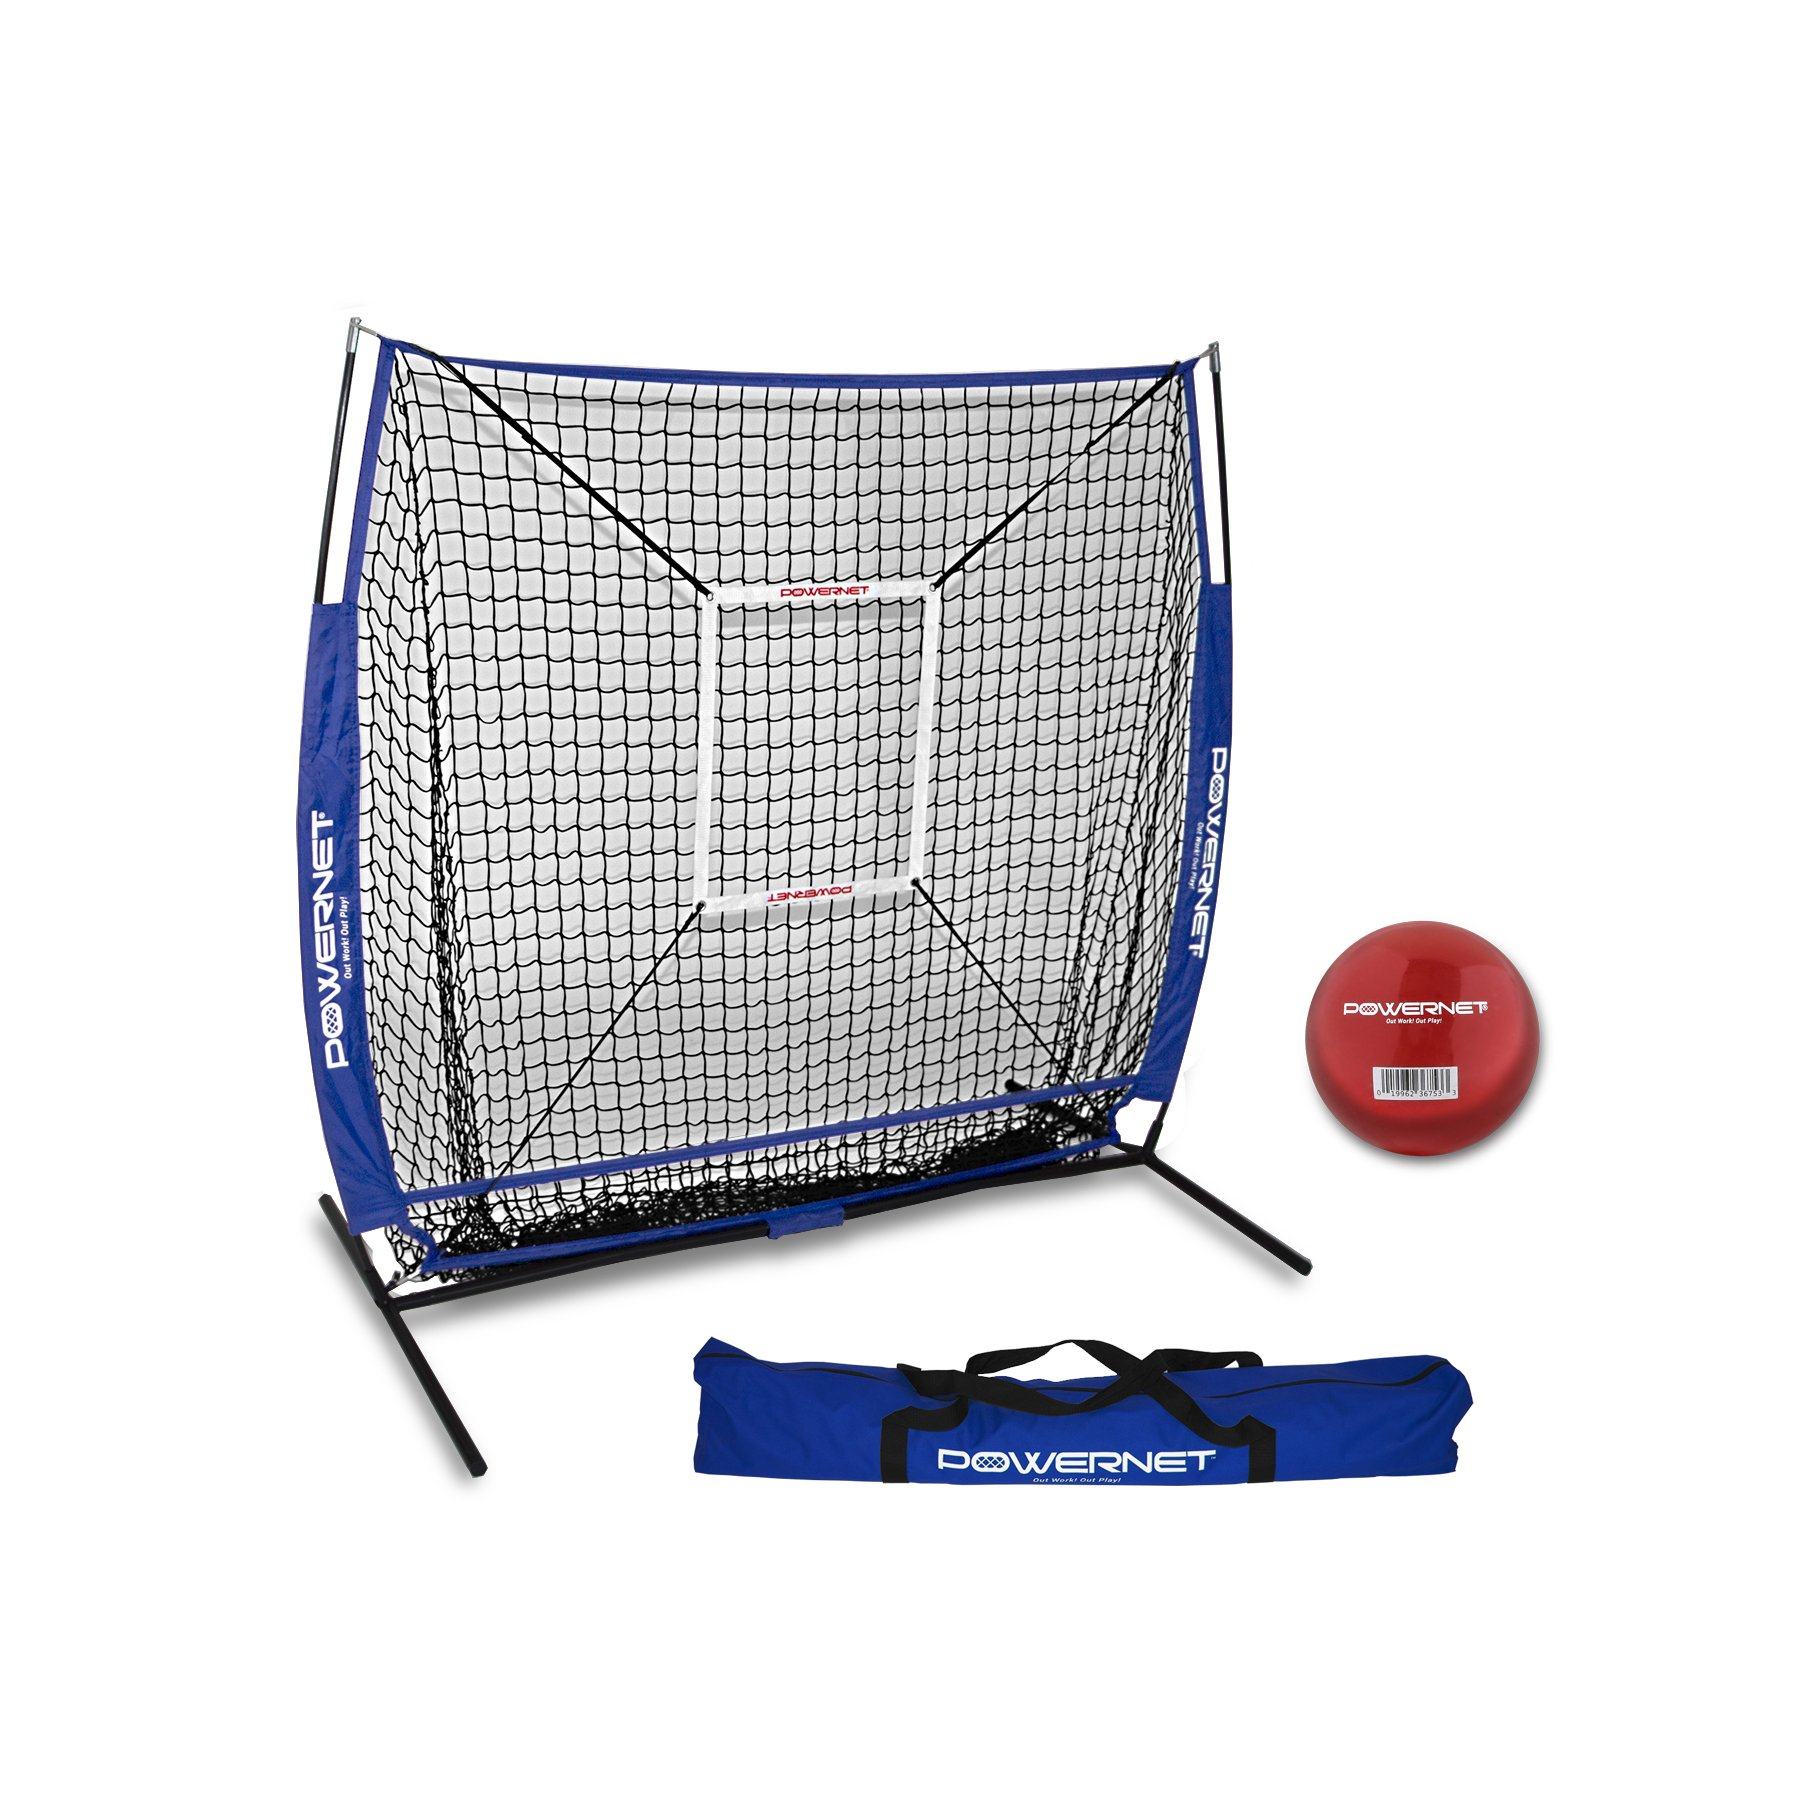 PowerNet 5x5 Practice Net + Strike Zone + Weighted Training Ball Bundle (Royal Blue) | Baseball Softball Coaching Aid | Compact Lightweight Ultra Portable | Team Color | Batting Screen by PowerNet